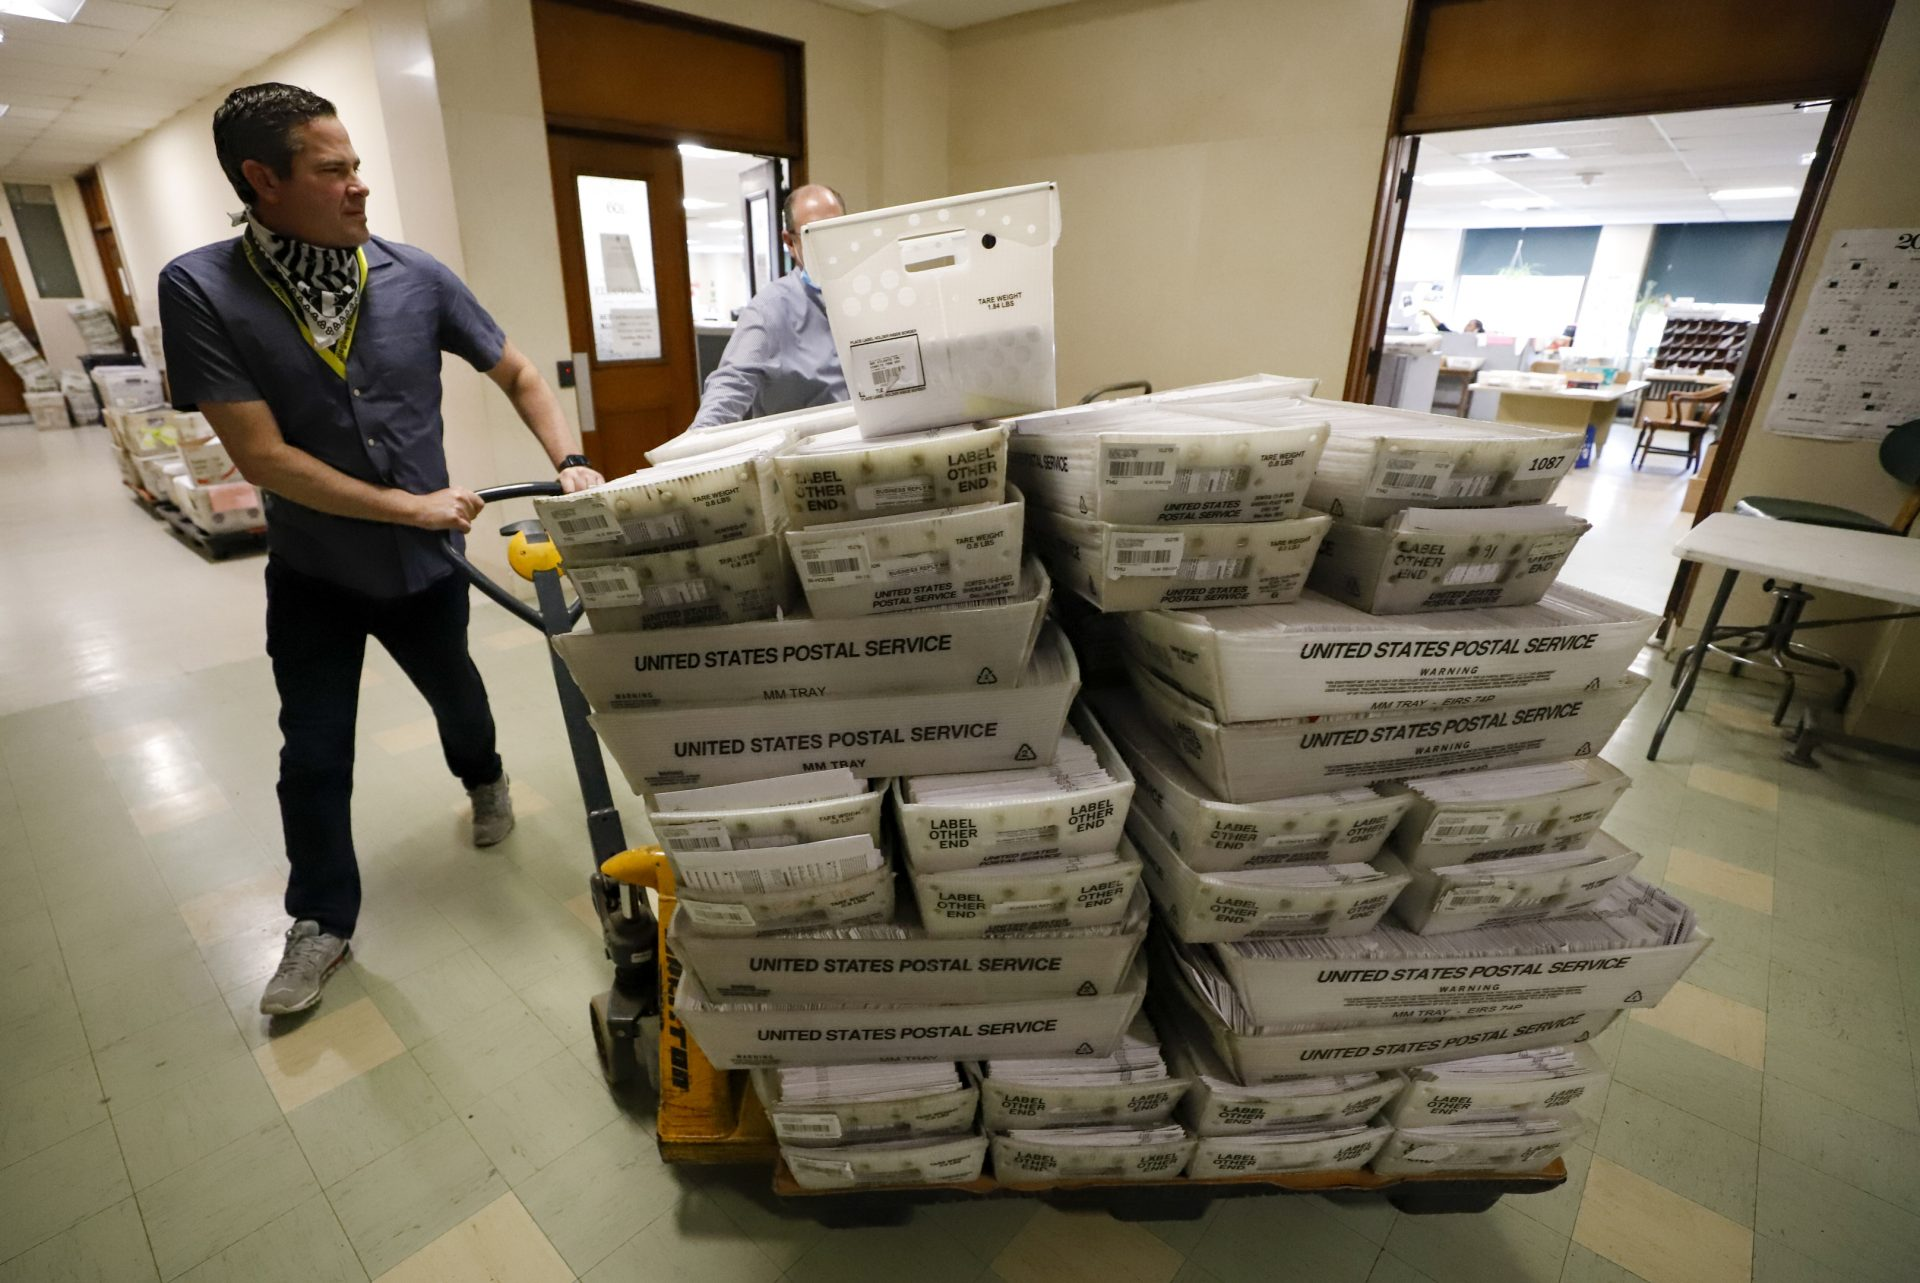 Chet Harhut, deputy manager, of the Allegheny County Division of Elections, wheels a dolly loaded with mail-in ballots, at the division of elections offices in downtown Pittsburgh Wednesday, May 27, 2020. The once-delayed June 2, Pennsylvania primary will feature legislative and congressional races, a first run for some new paper-record voting systems and the inaugural use of newly legalized mail-in ballots.